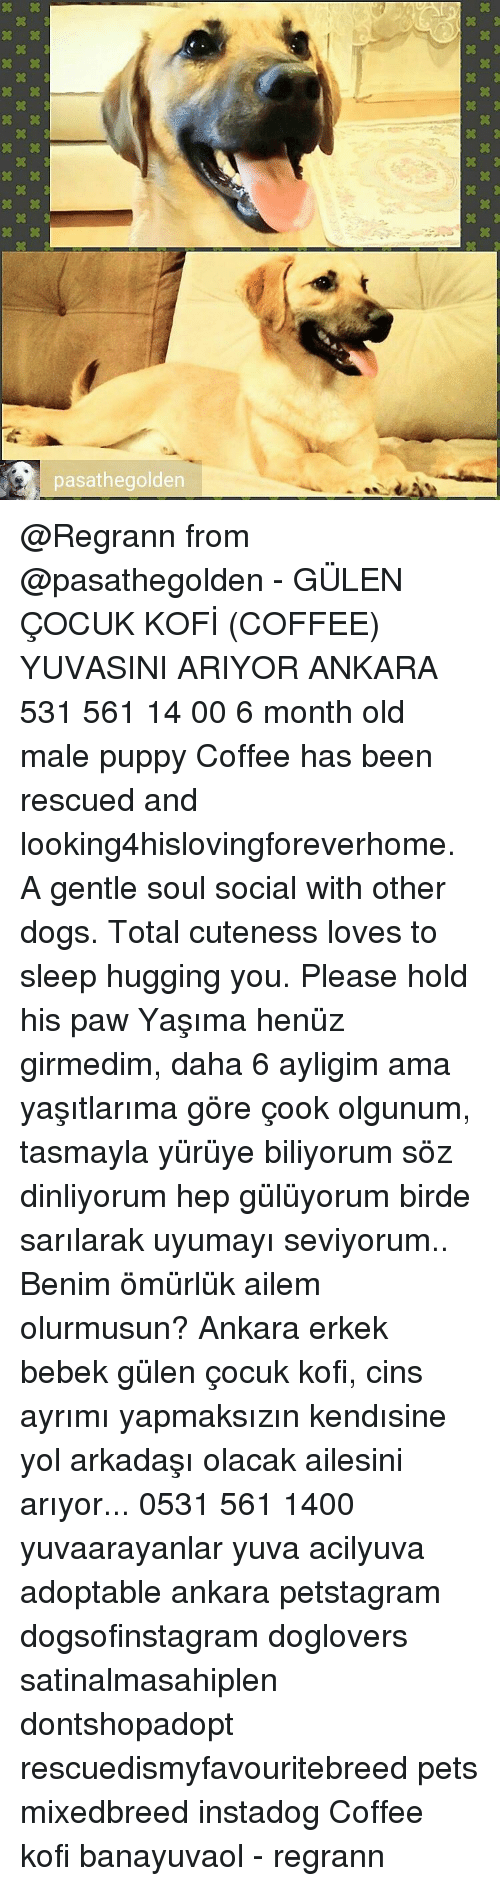 Memes, Amas, and 🤖: Dasathegolden  xxxxxxxxx  XXXXXXX  XXXXXXXX  xxxxxxxxx  XXXXXXXX @Regrann from @pasathegolden - GÜLEN ÇOCUK KOFİ (COFFEE) YUVASINI ARIYOR ANKARA 531 561 14 00 6 month old male puppy Coffee has been rescued and looking4hislovingforeverhome. A gentle soul social with other dogs. Total cuteness loves to sleep hugging you. Please hold his paw Yaşıma henüz girmedim, daha 6 ayligim ama yaşıtlarıma göre çook olgunum, tasmayla yürüye biliyorum söz dinliyorum hep gülüyorum birde sarılarak uyumayı seviyorum.. Benim ömürlük ailem olurmusun? Ankara erkek bebek gülen çocuk kofi, cins ayrımı yapmaksızın kendısine yol arkadaşı olacak ailesini arıyor... 0531 561 1400 yuvaarayanlar yuva acilyuva adoptable ankara petstagram dogsofinstagram doglovers satinalmasahiplen dontshopadopt rescuedismyfavouritebreed pets mixedbreed instadog Coffee kofi banayuvaol - regrann